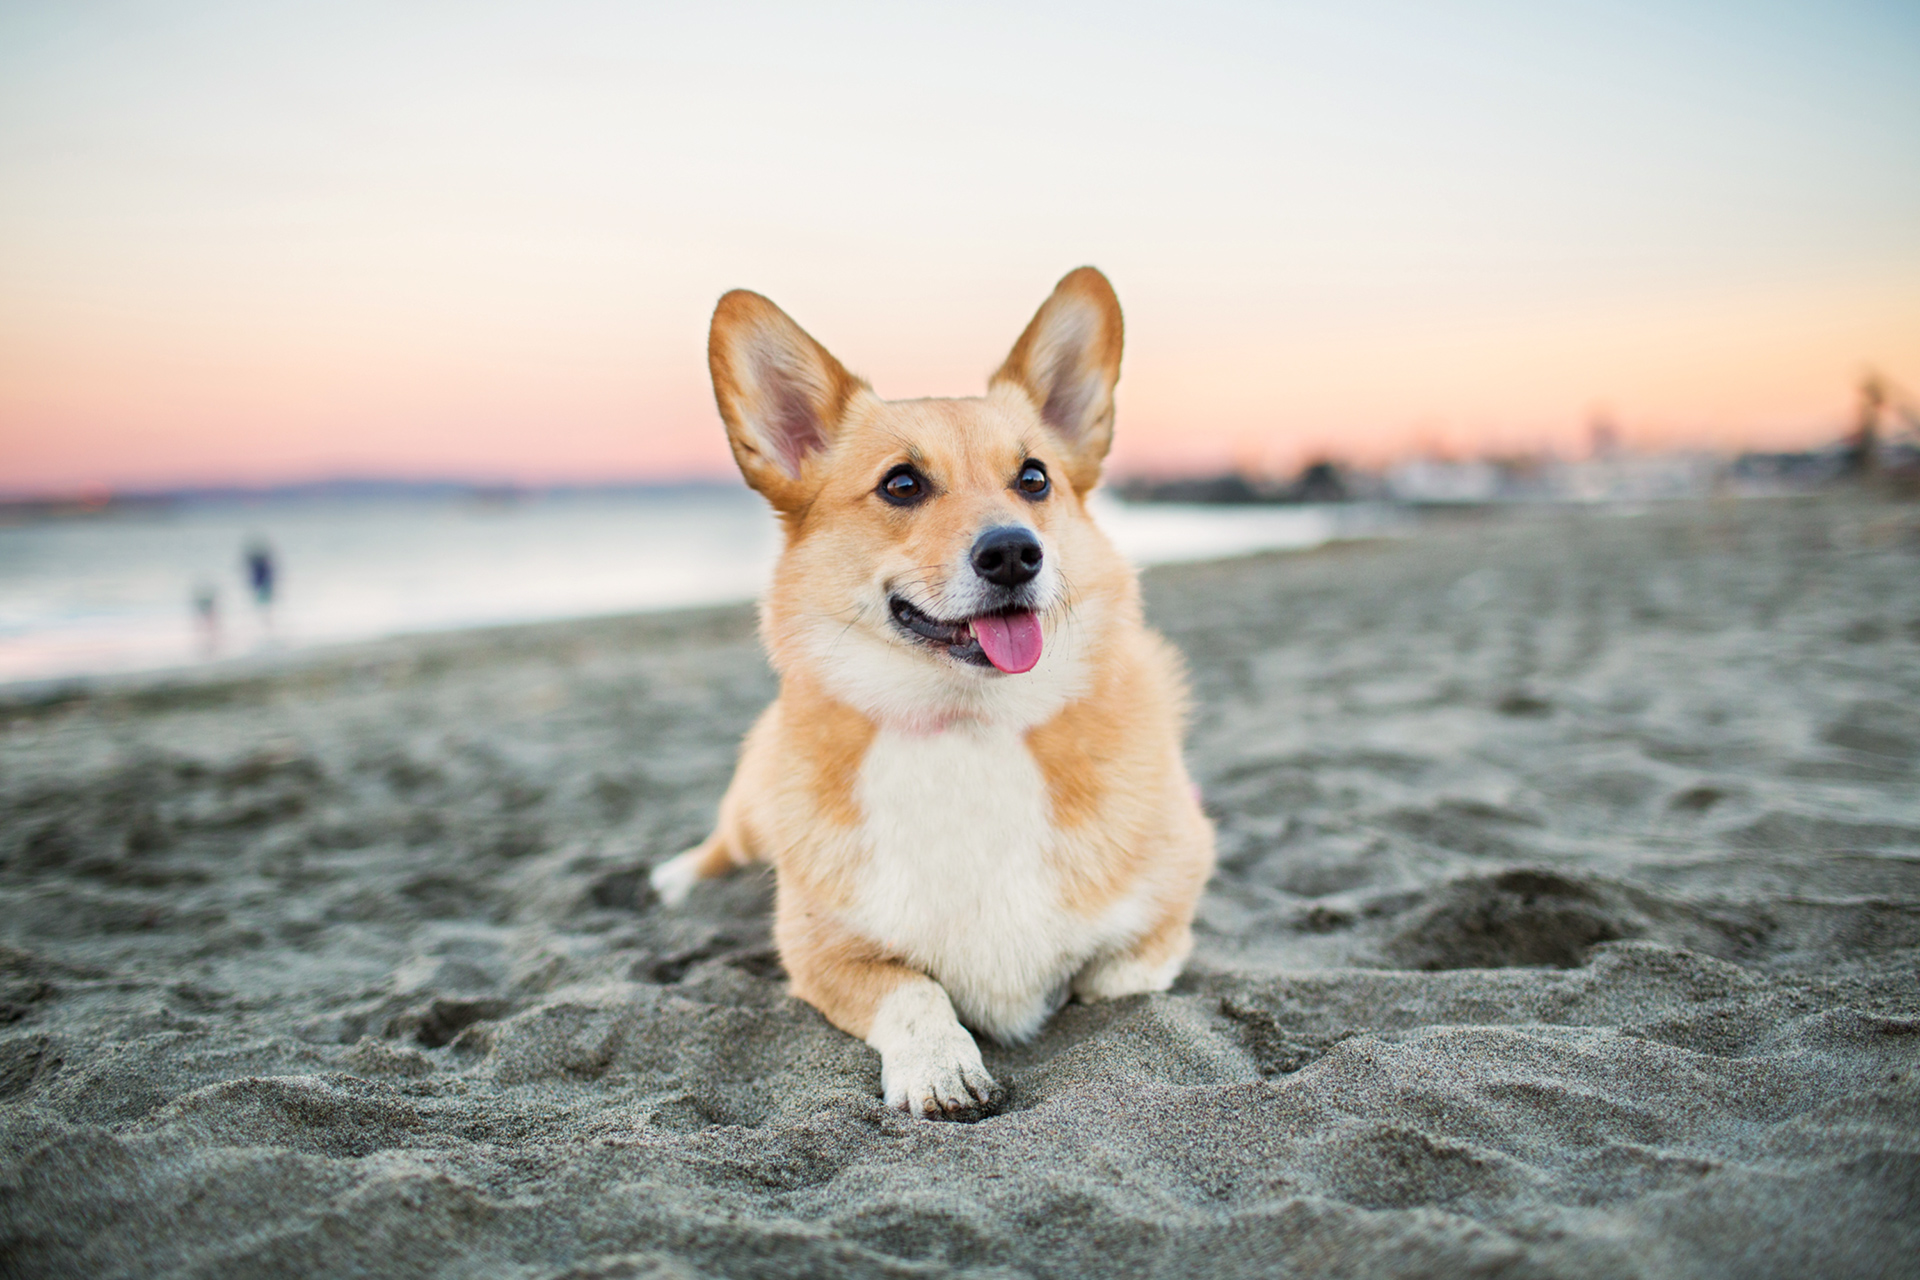 corgi dog on beach at sunset